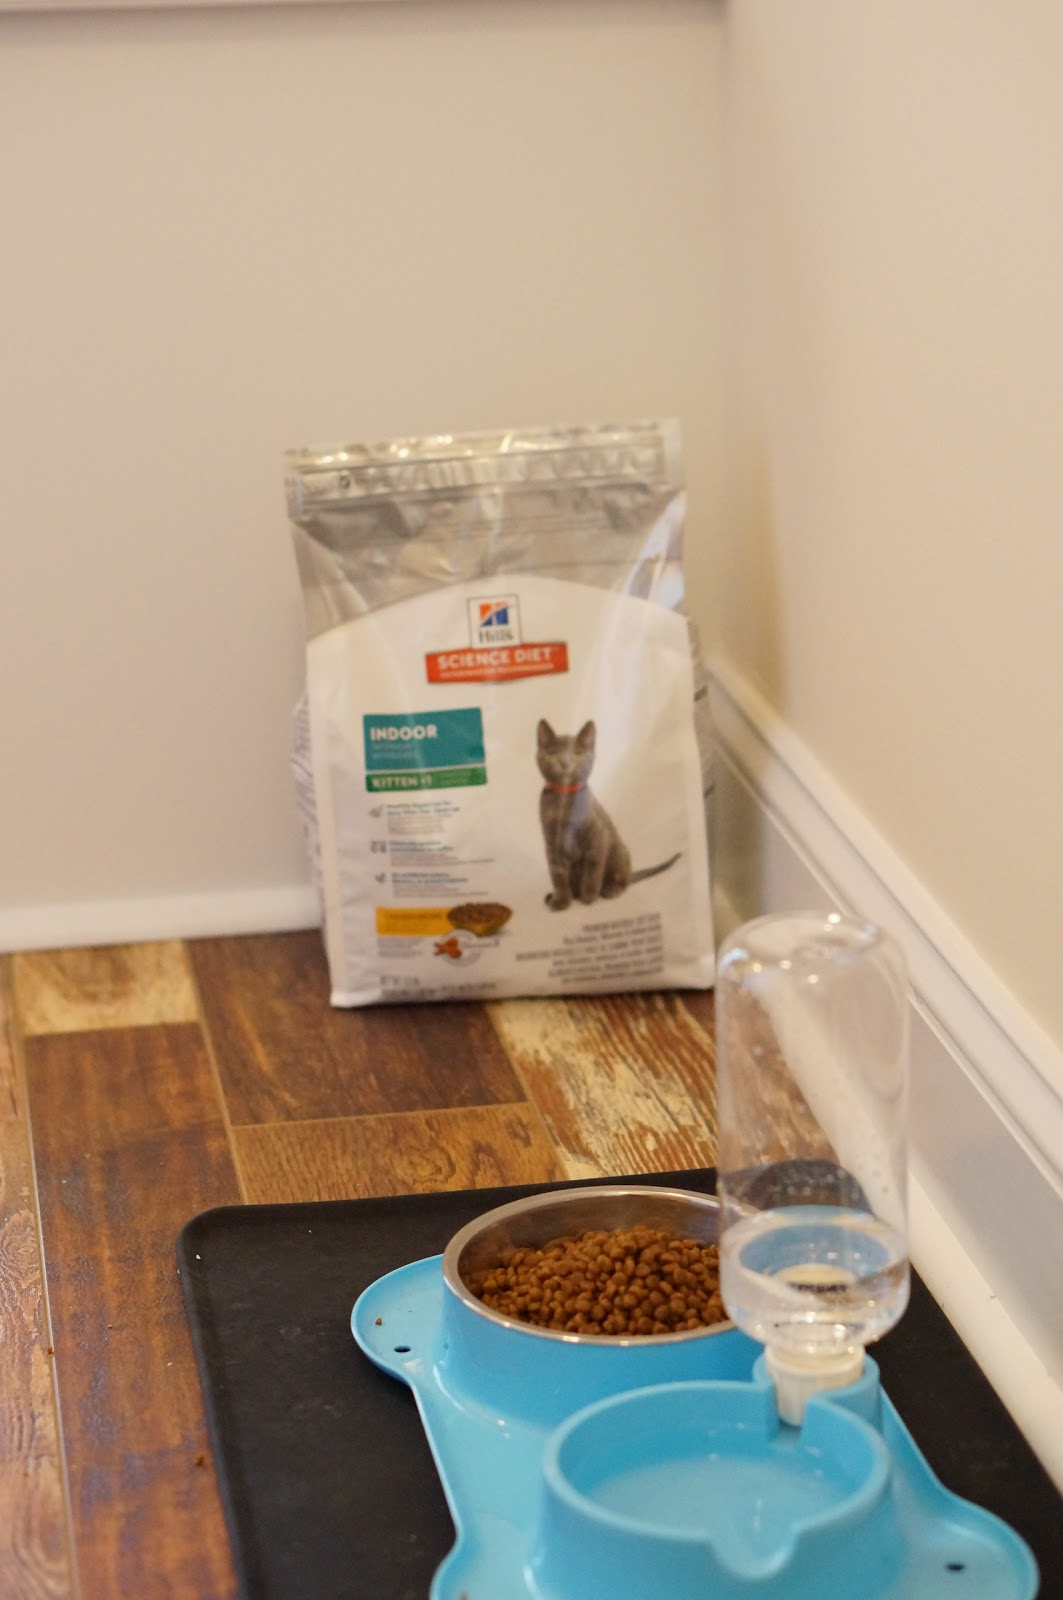 ADOPTING A KITTEN | SCIENCE DIET® by North Carolina lifestyle blogger Rebecca Lately